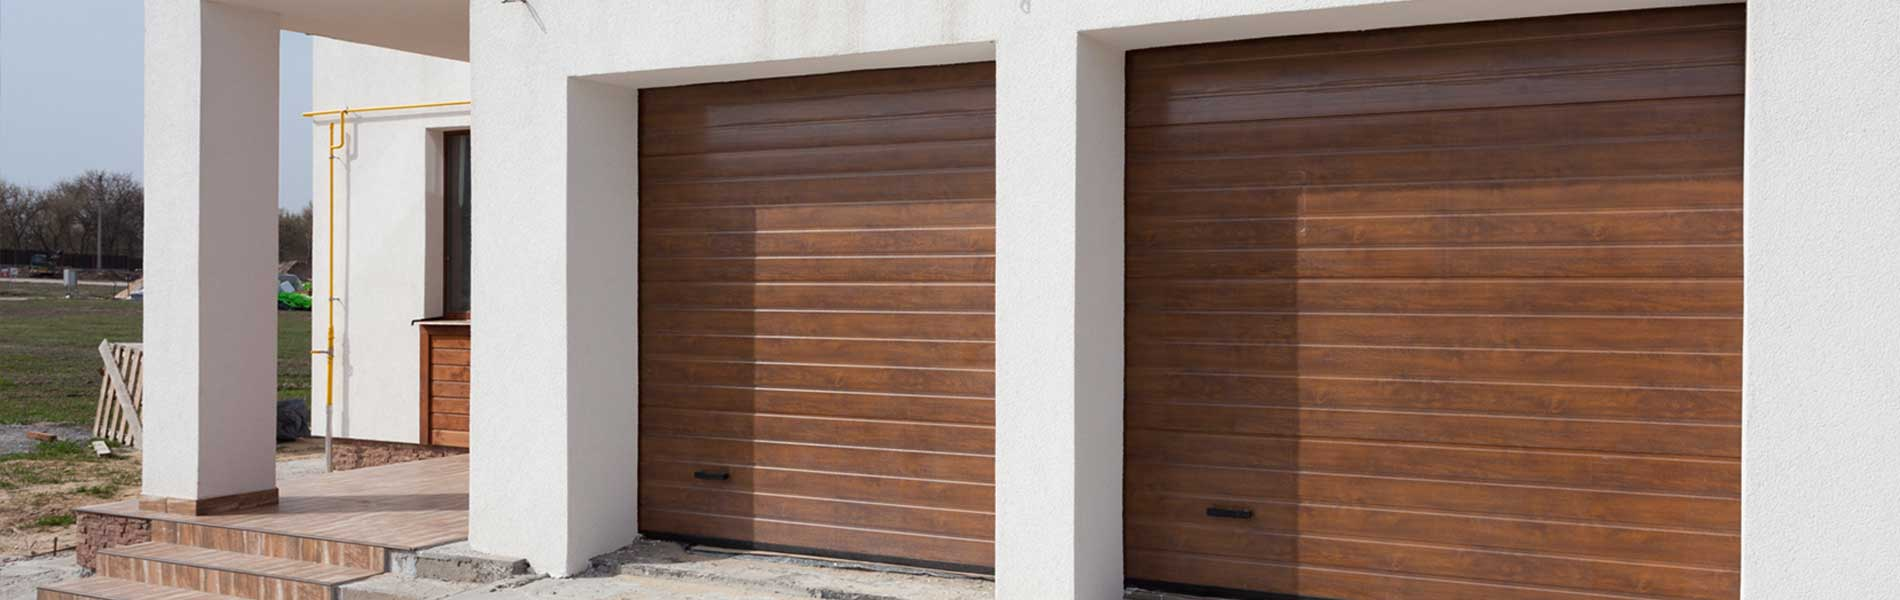 Elite Garage Door Service, Gresham, OR 503-741-4020